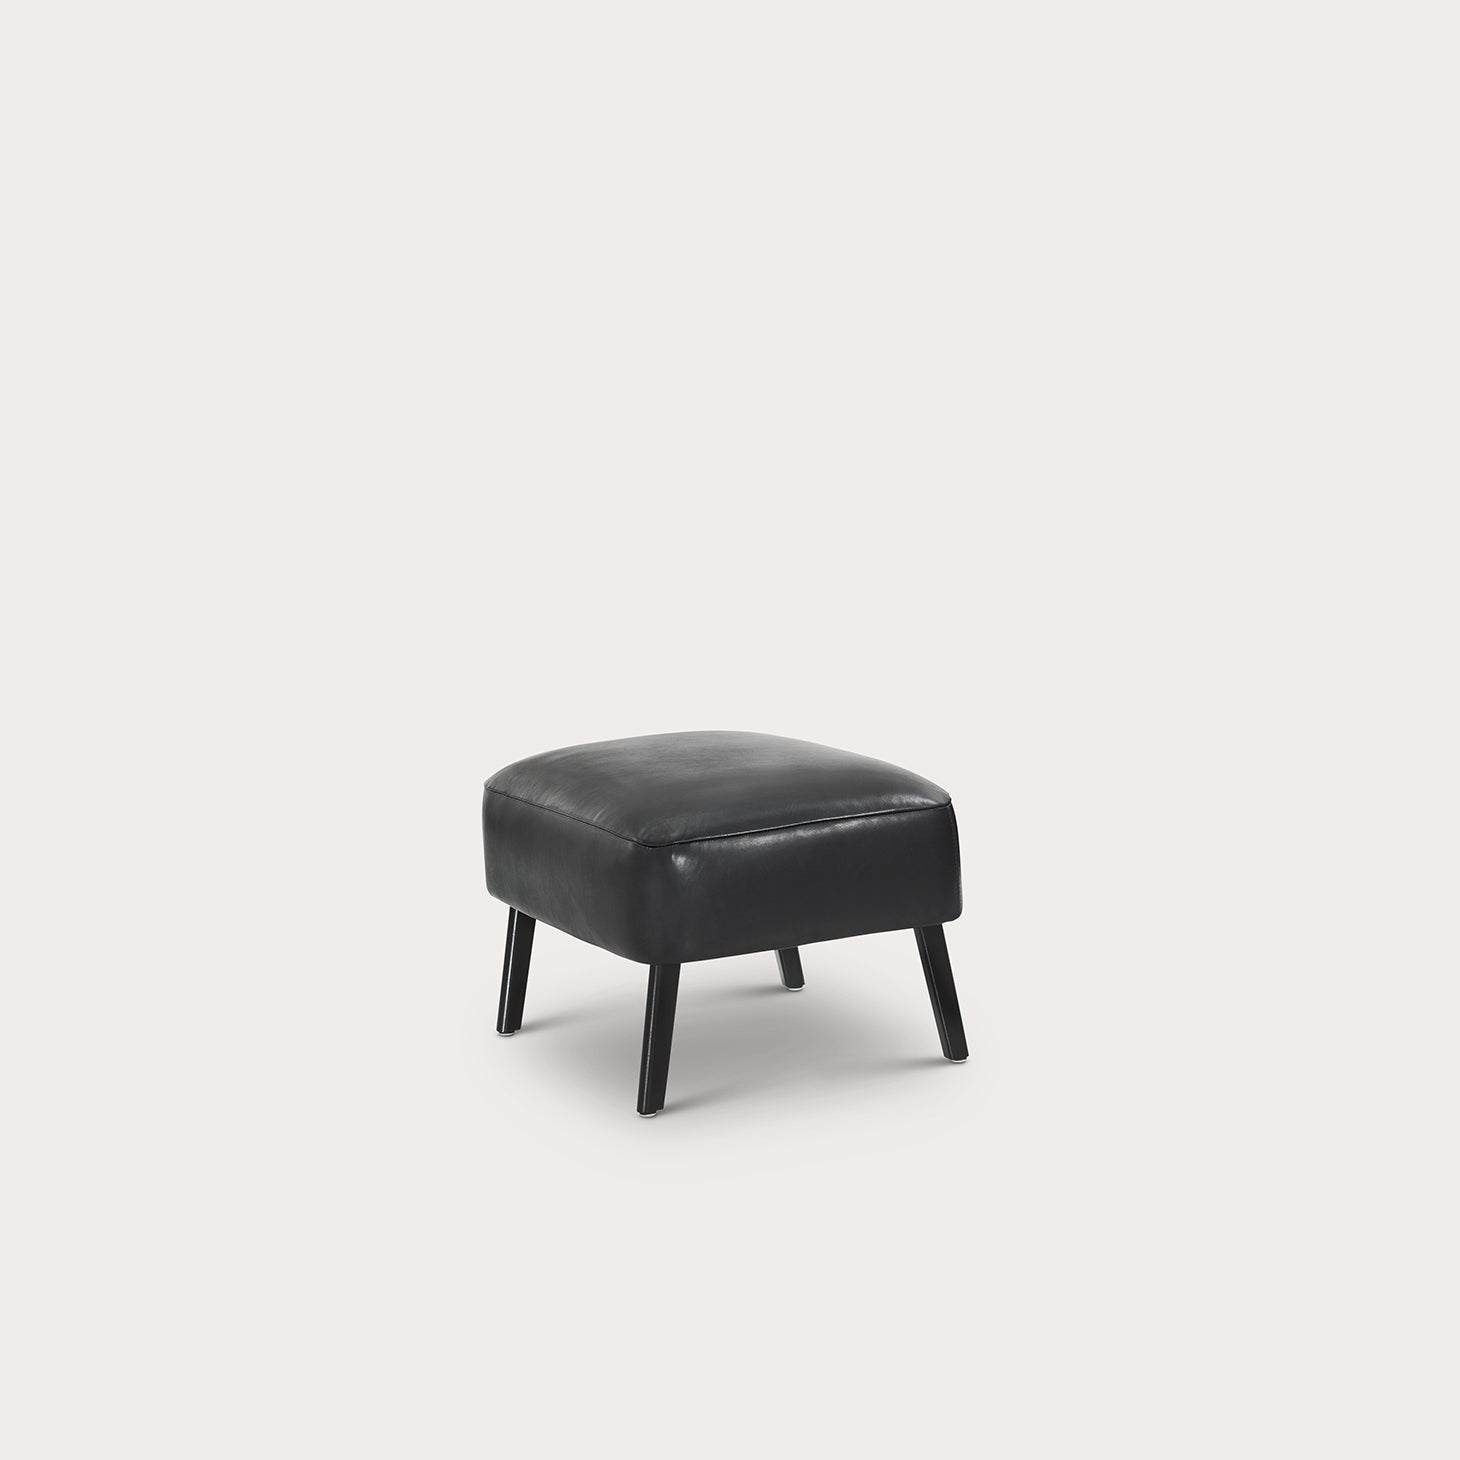 Mono Stool Seating Marco Dessi Designer Furniture Sku: 758-240-10029